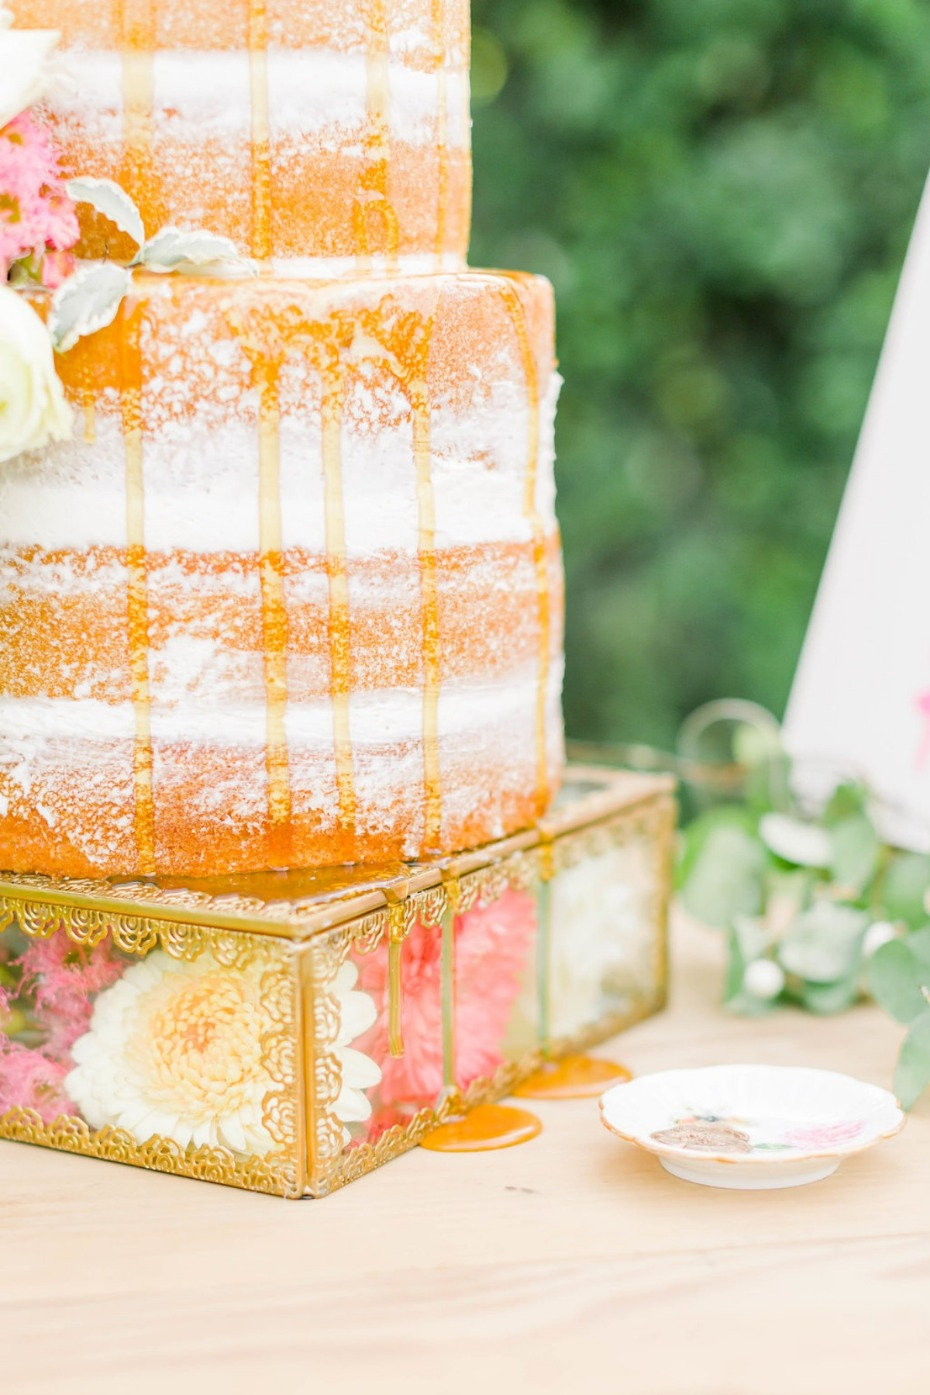 Honey drizzle wedding cake